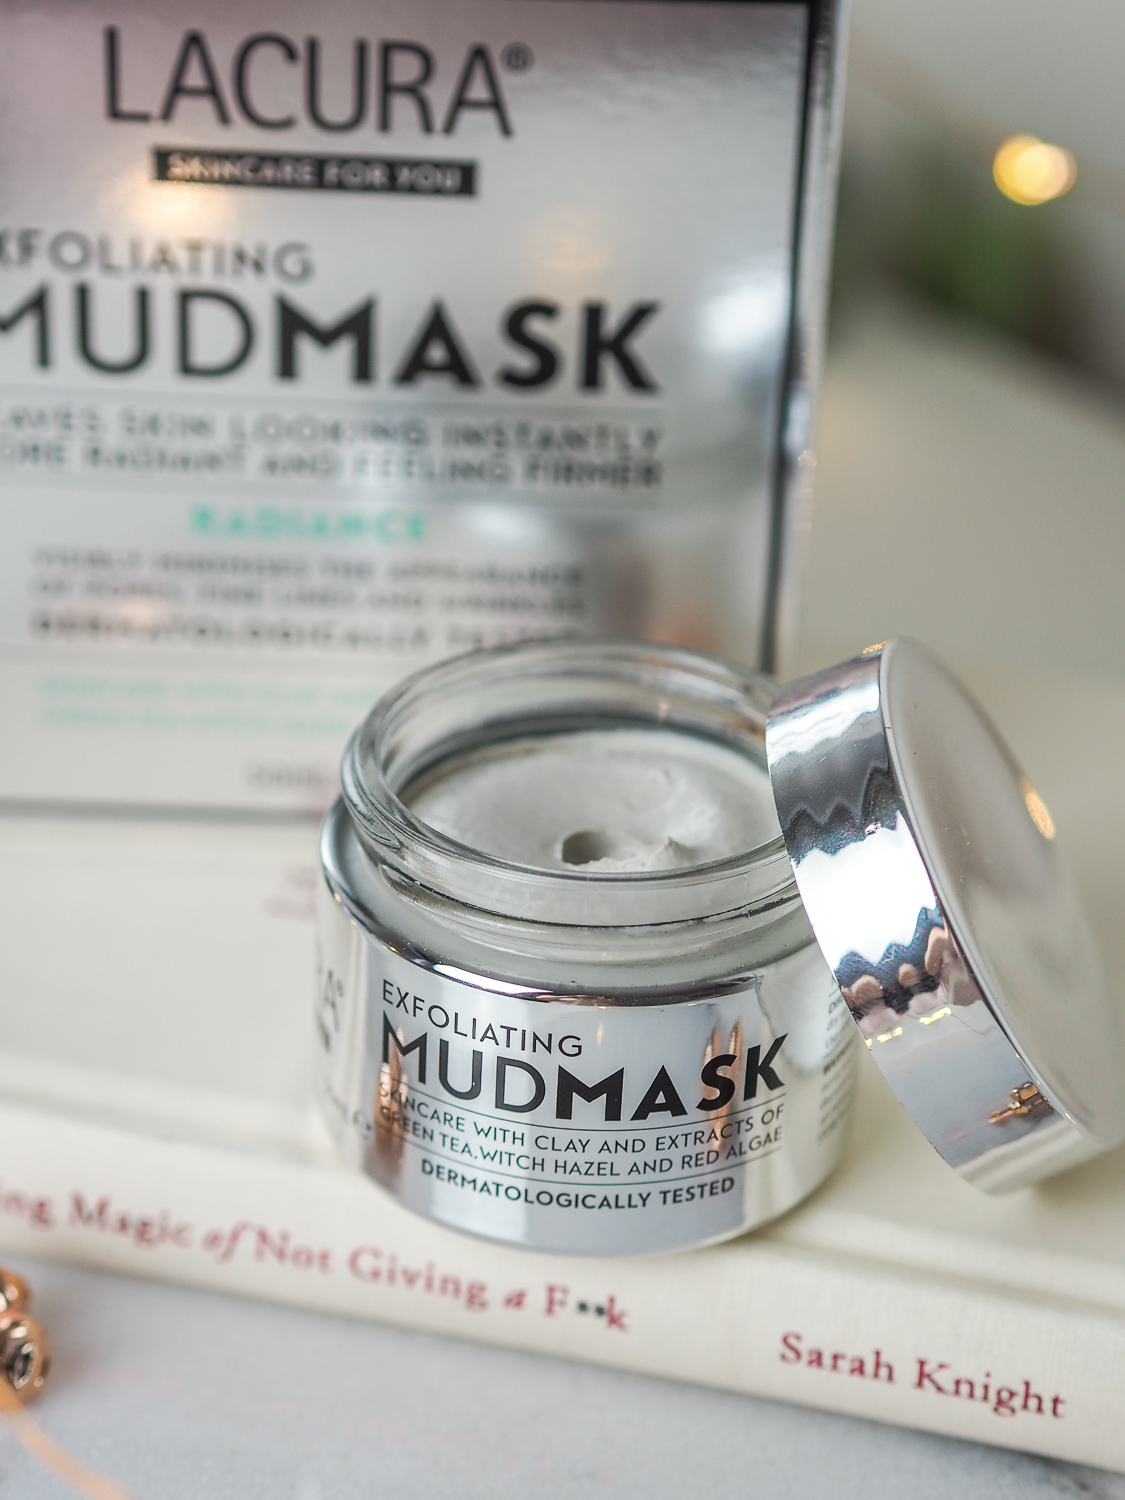 The £6 Glamglow face mask dupe from Aldi | LUCY-COLE